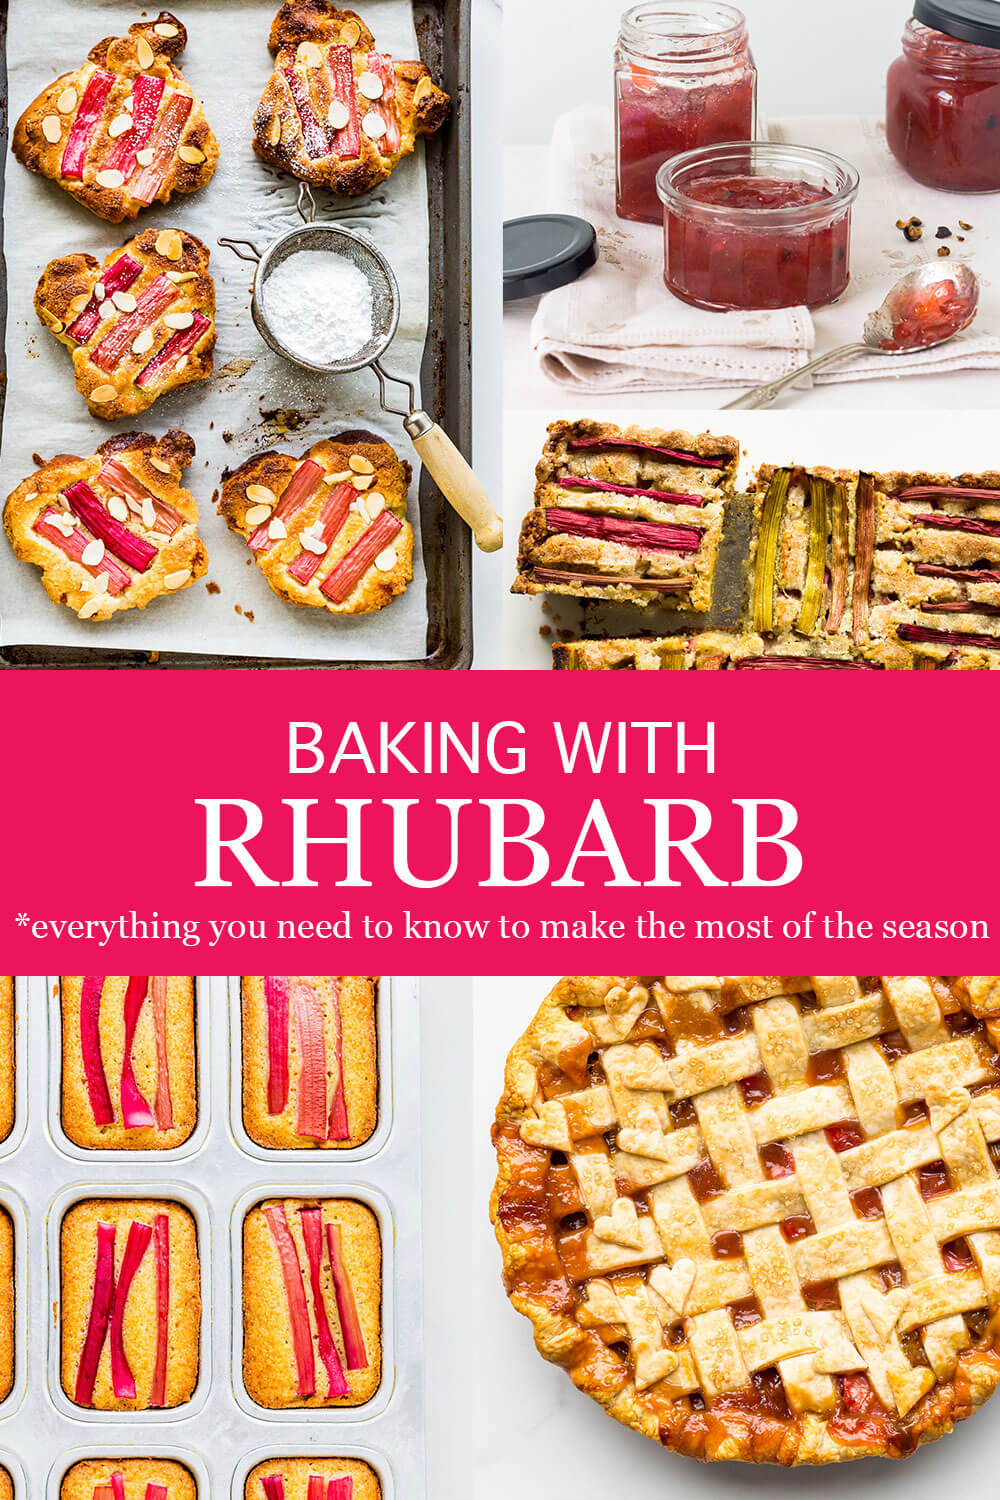 Baking with rhubarb and everything you need to know to make the most of the season featuring rhubarb pie, orange cake with rhubarb, rhubarb jam, rhubarb cake, and bostock